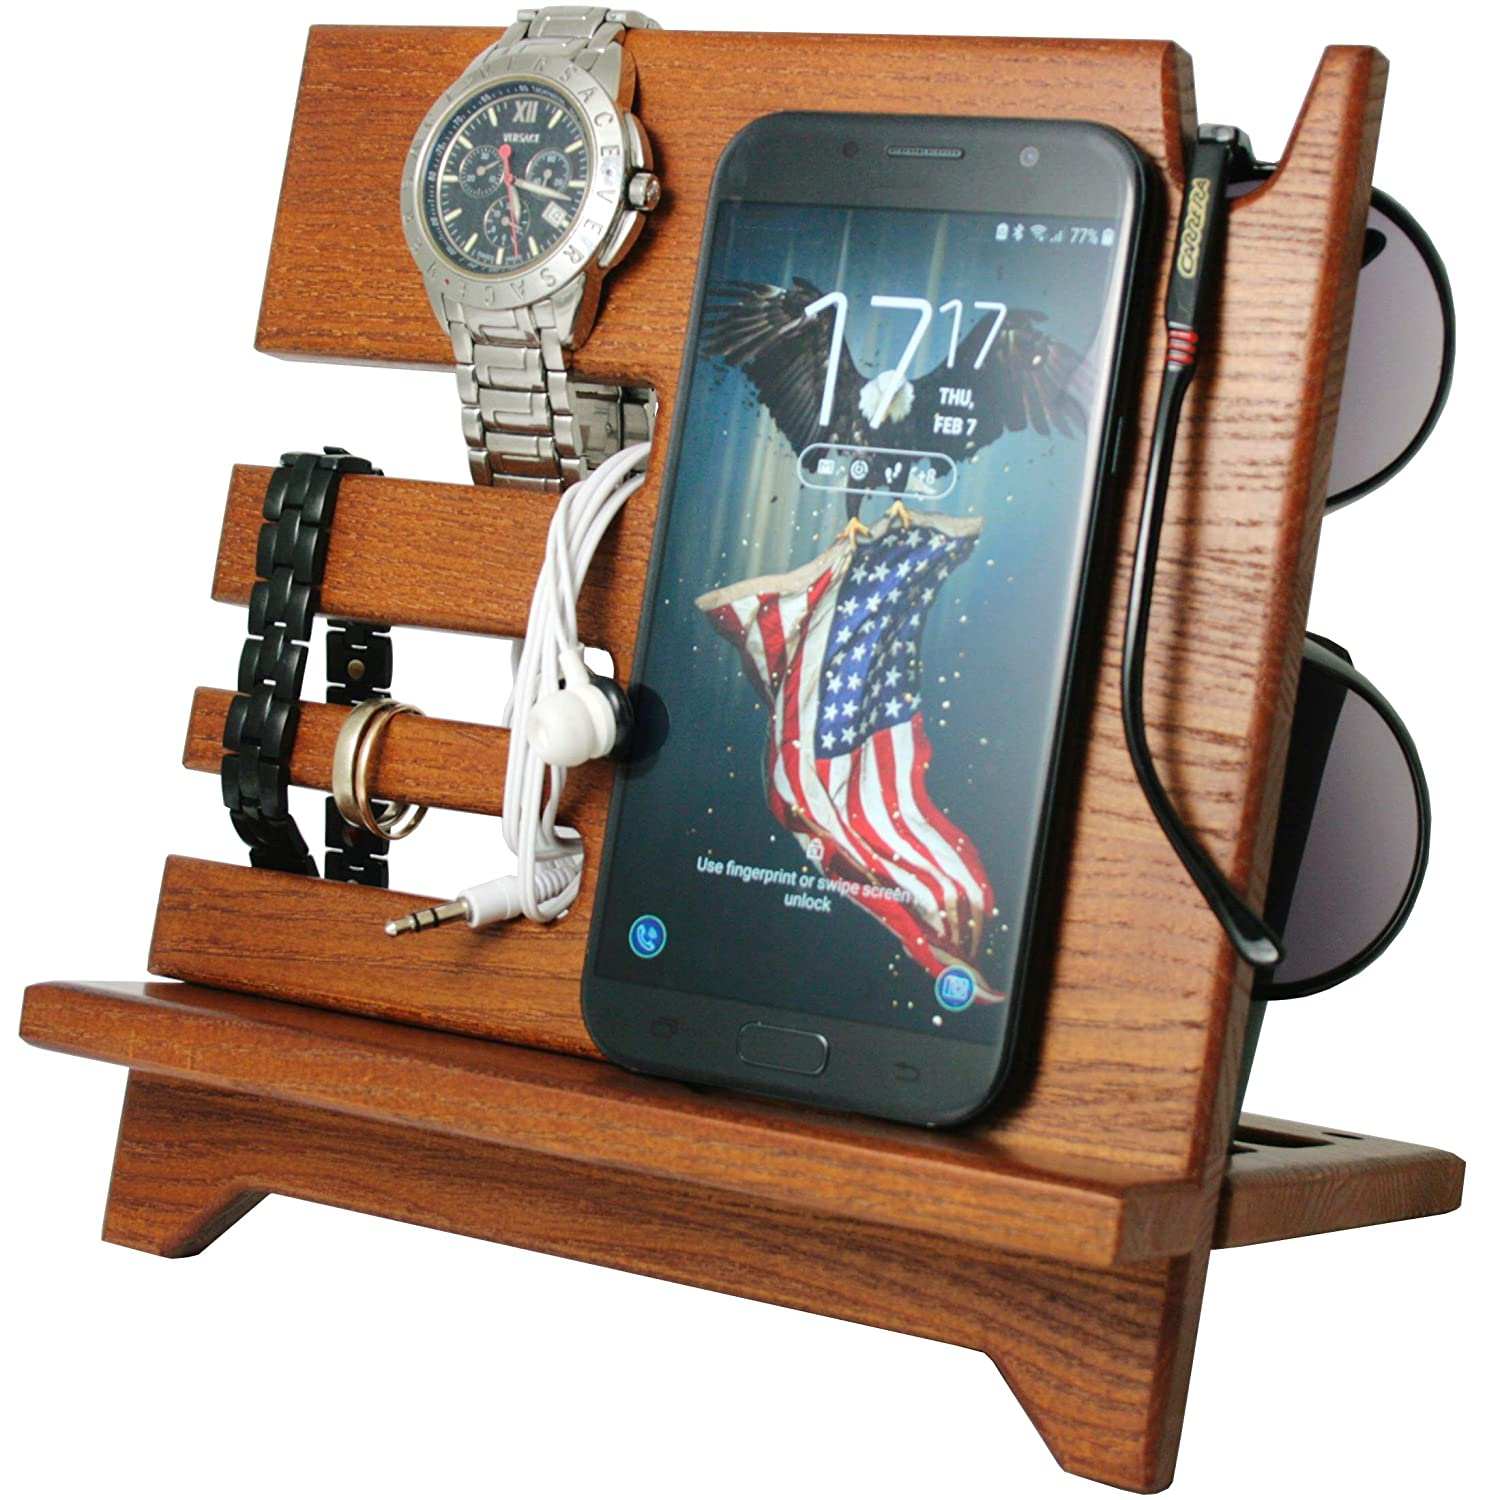 Cell Phone Stand Watch Holder. Men Wireless Device Dock Organizer Wood Mobile Base Nightstand Charging Docking Station. Women Accessories Wooden Storage.